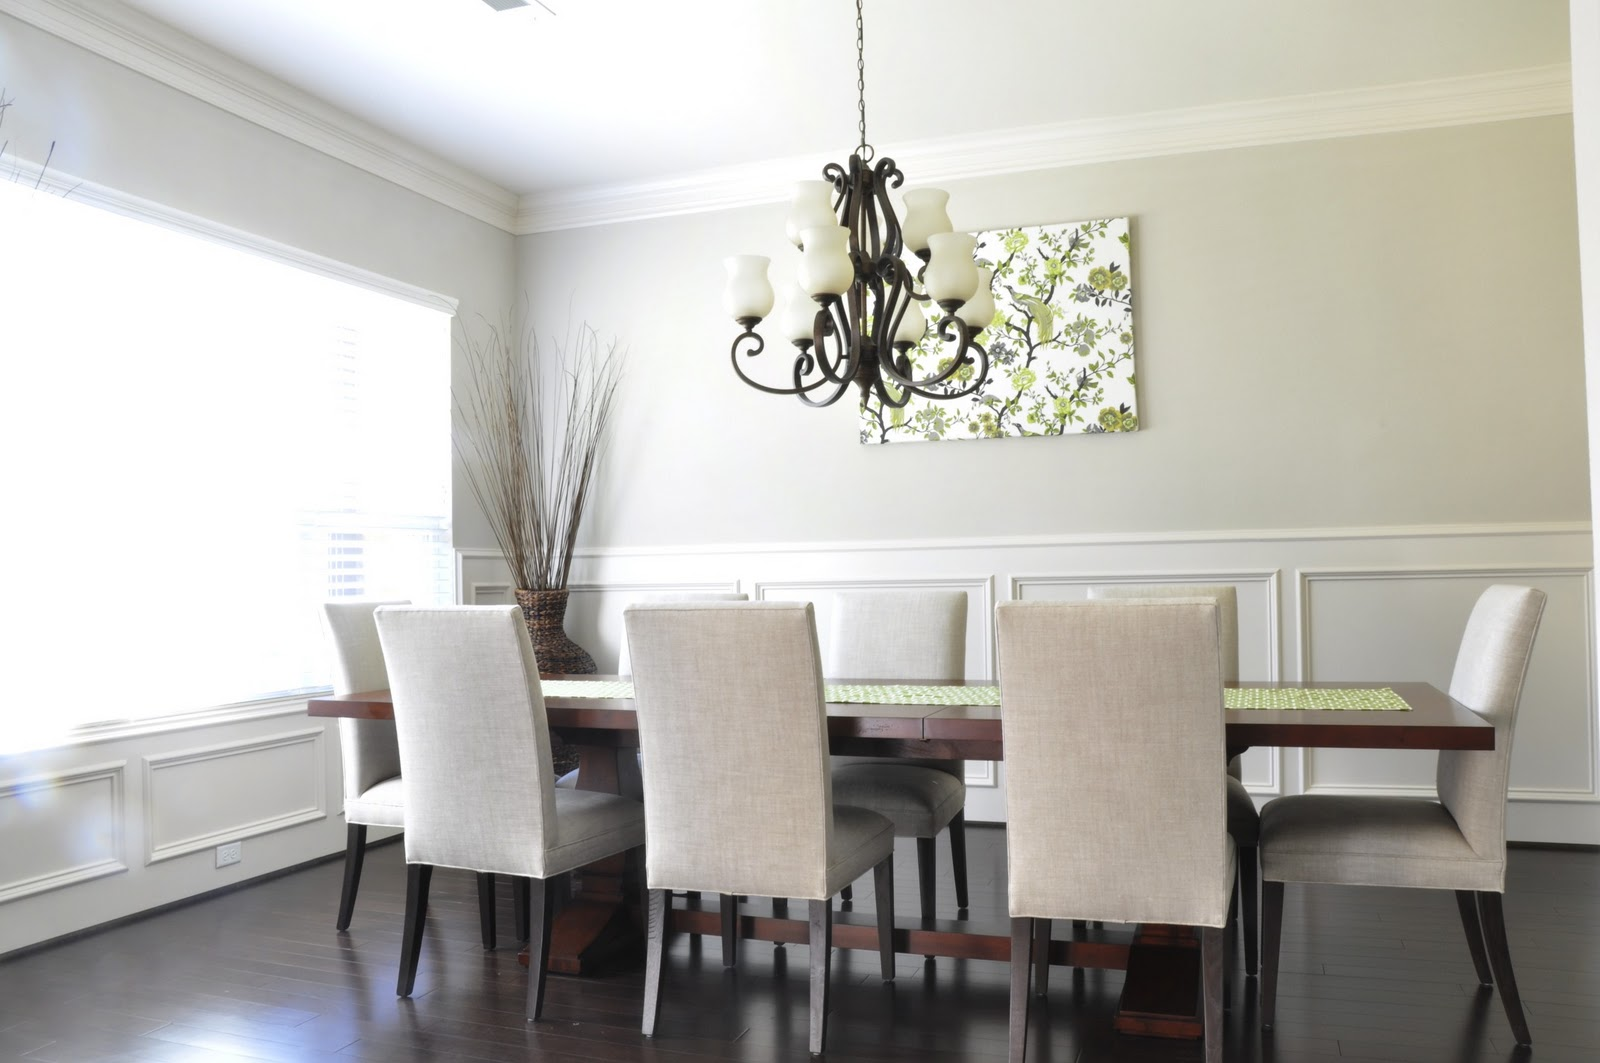 dining room progress drapes mirror honey we 39 re home. Black Bedroom Furniture Sets. Home Design Ideas